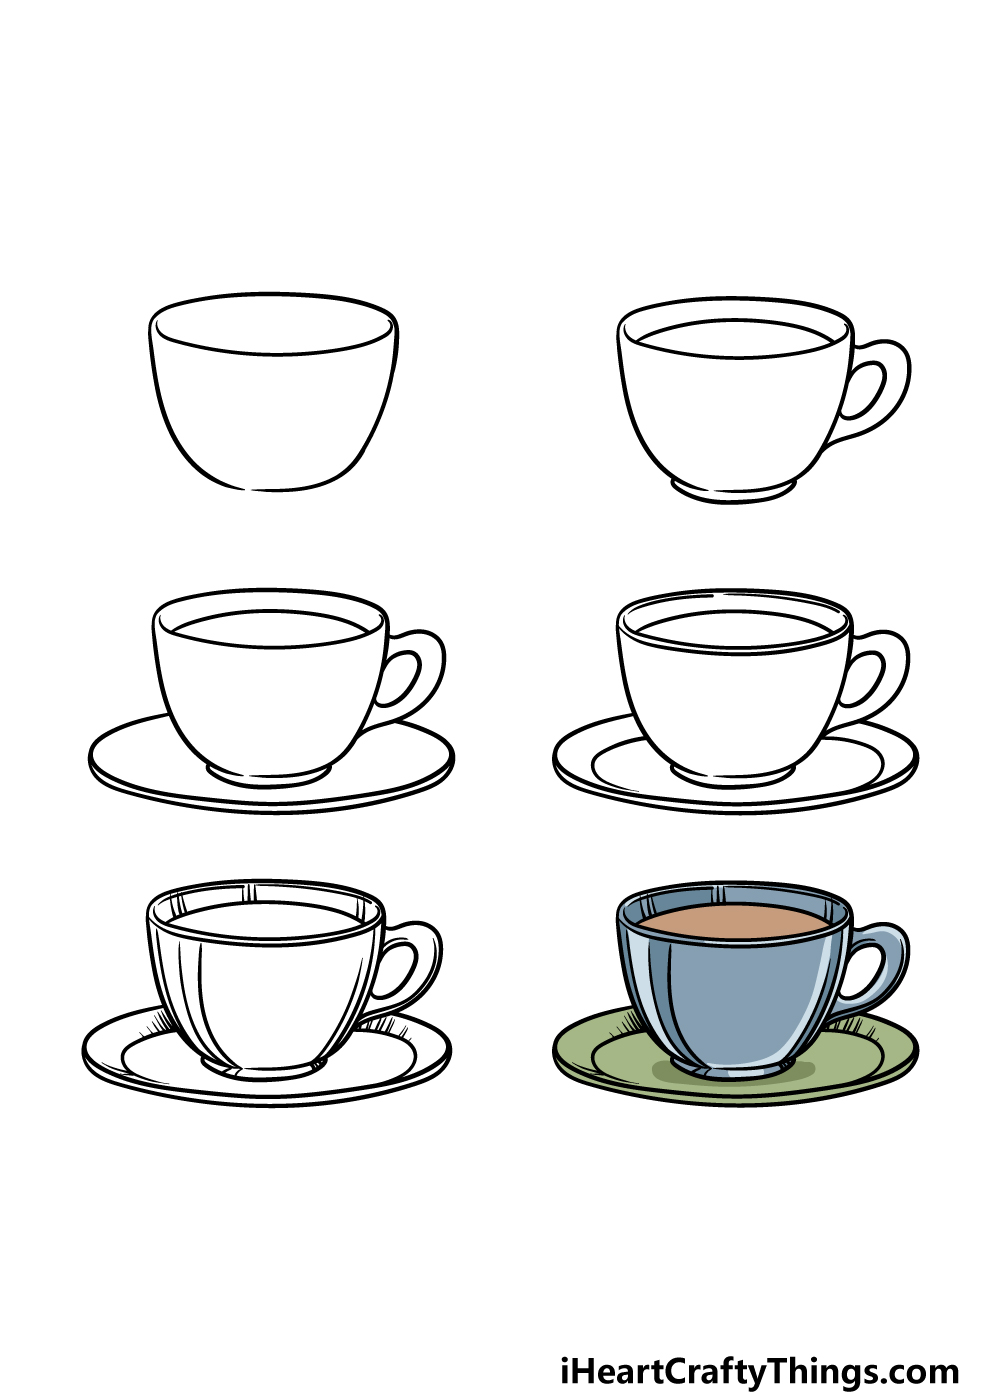 how to draw a tea cup in 6 steps